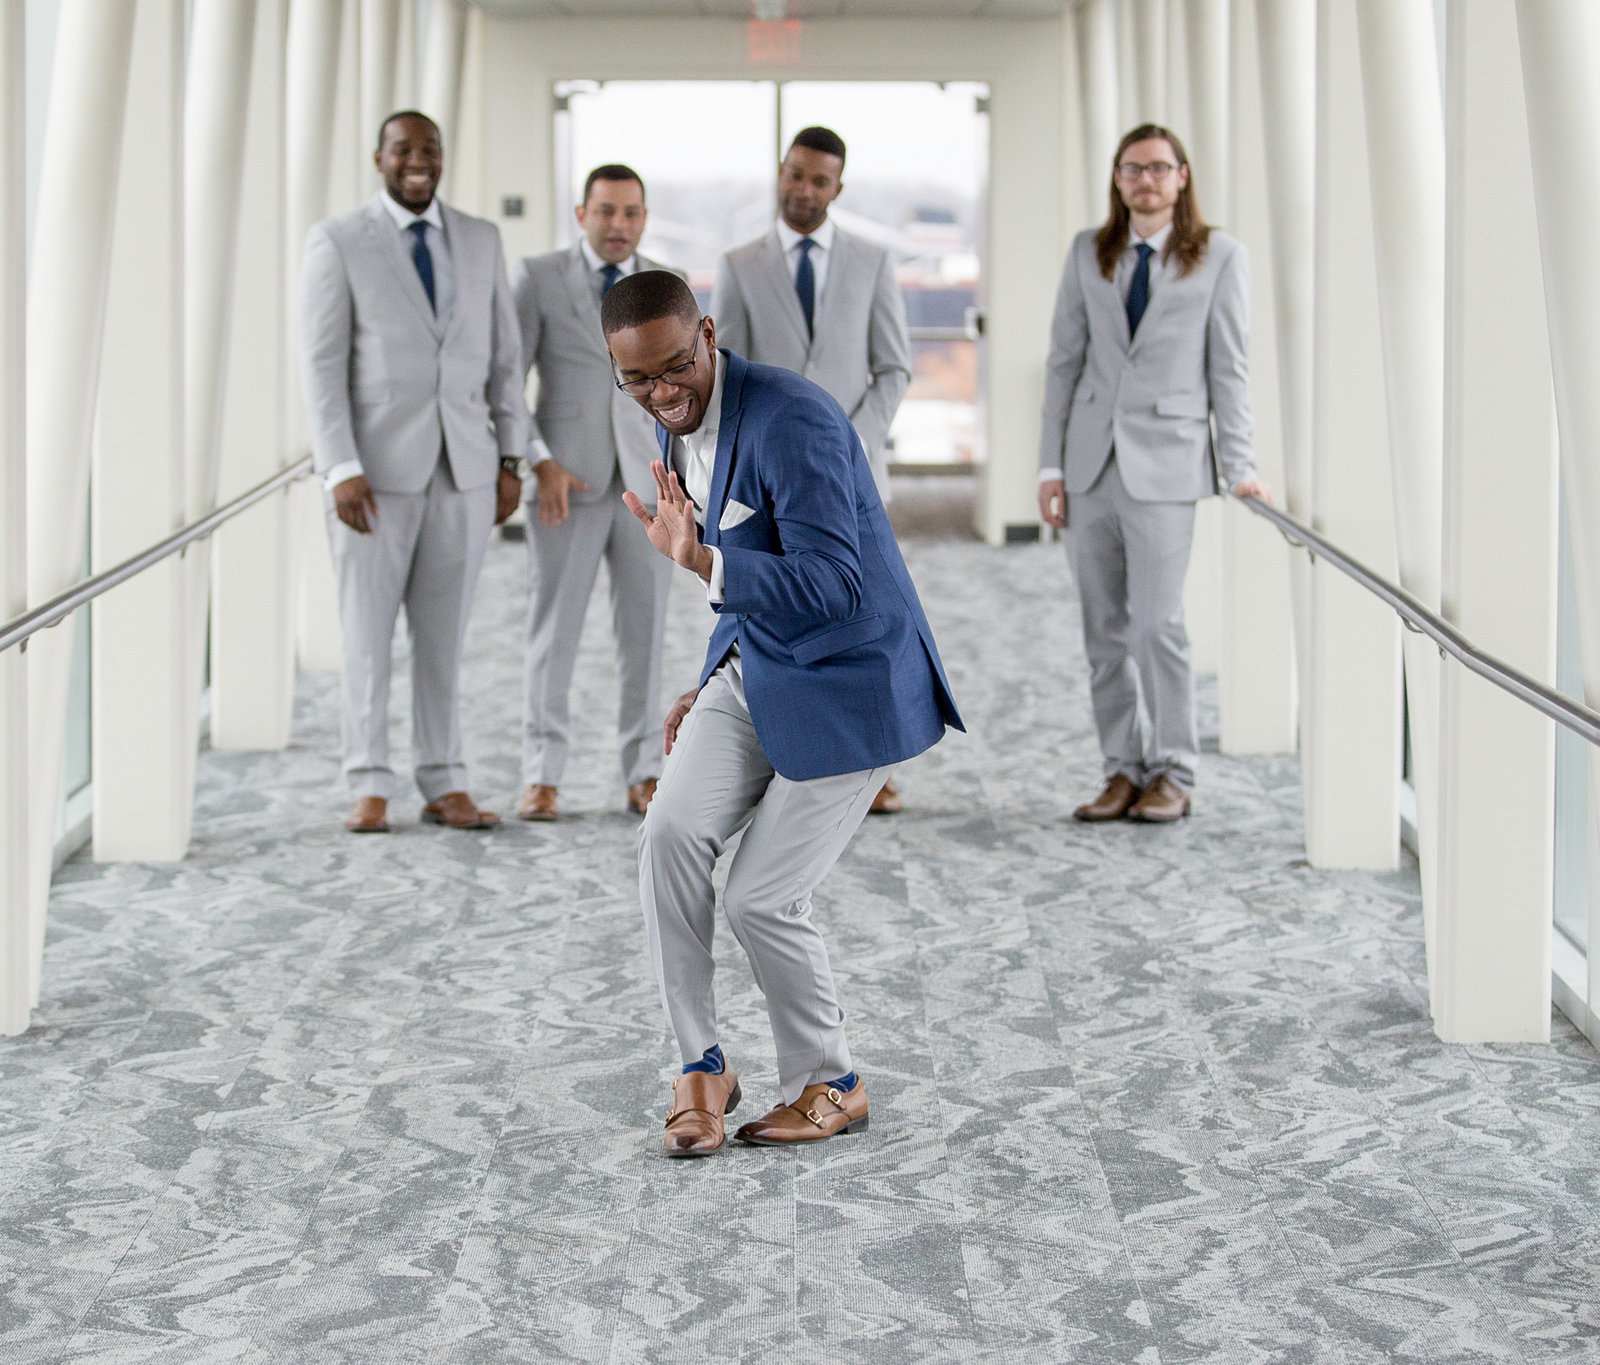 Groom dances down the skybridge at Sheraton Erie Bayfront Hotel while his groomsmen look on